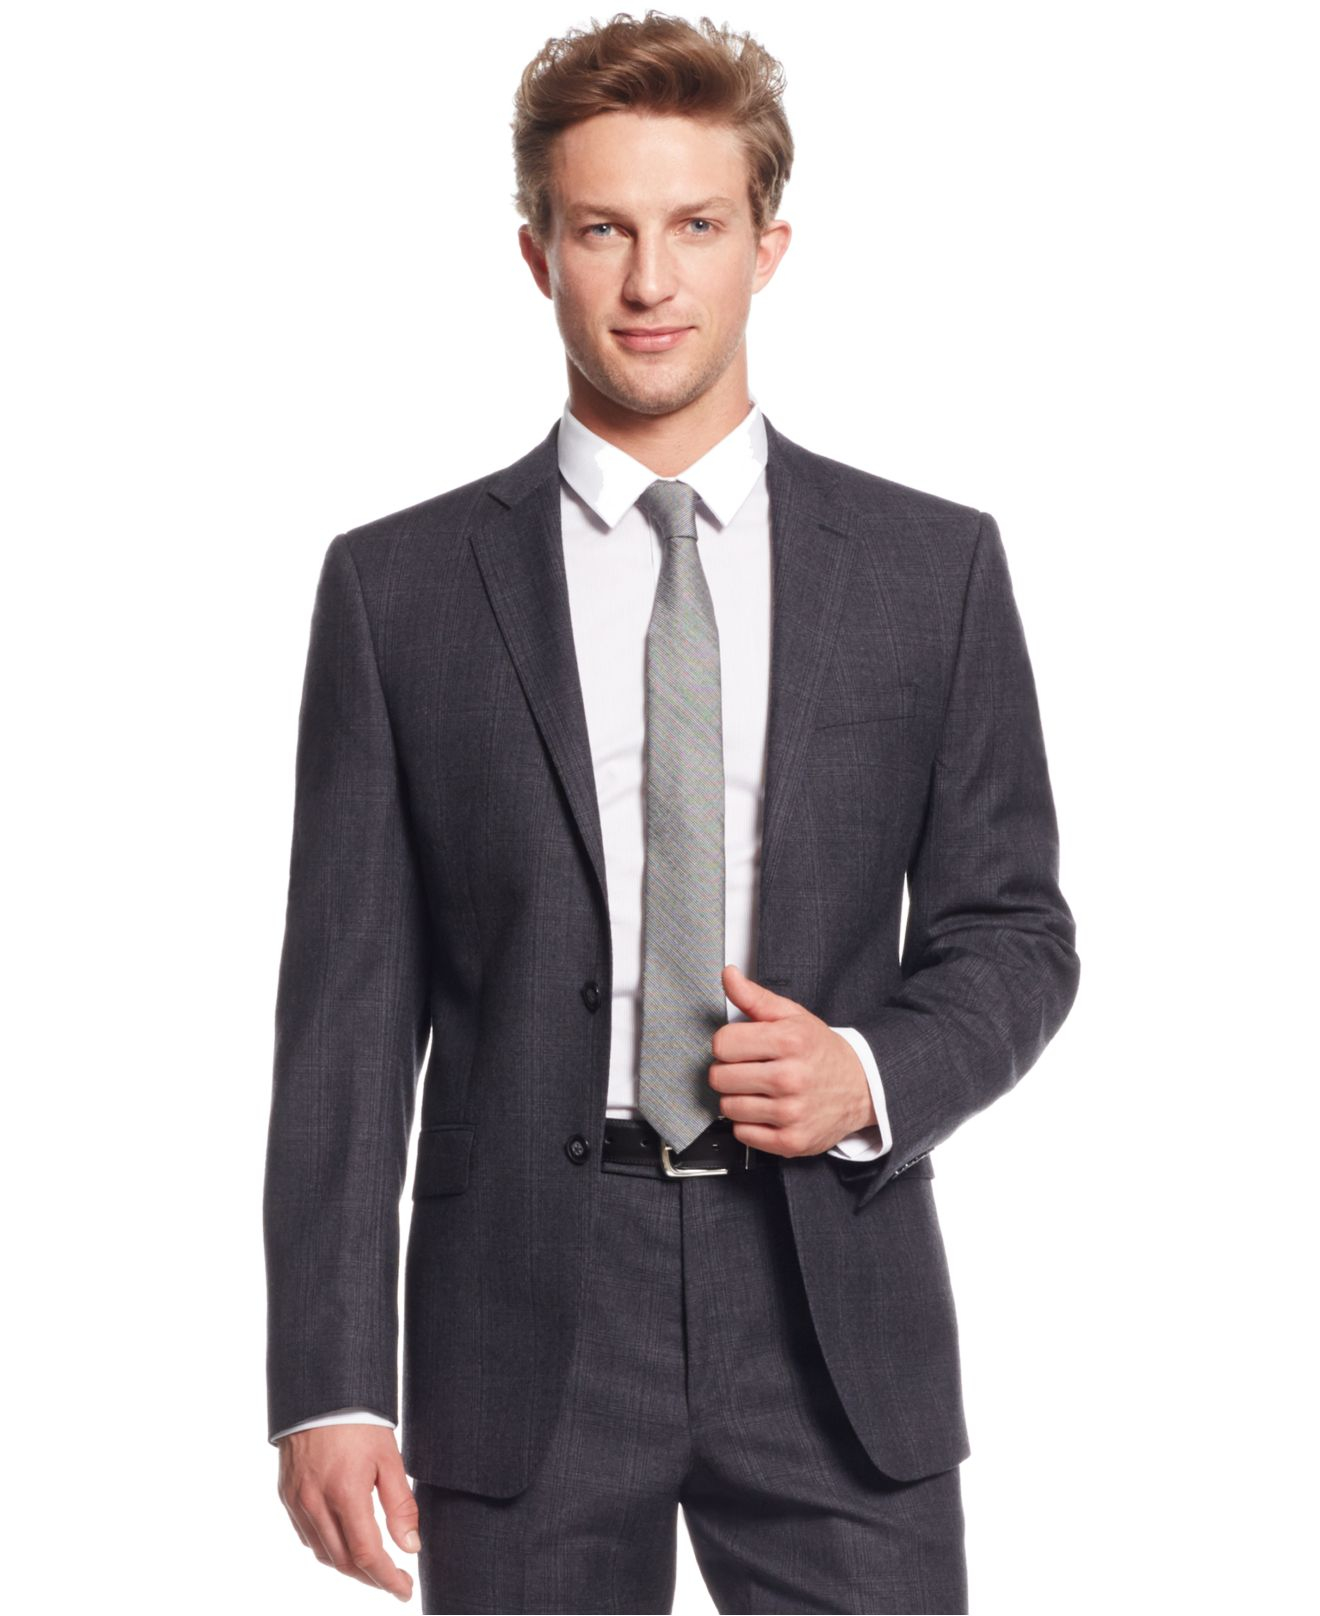 calvin klein grey plaid flannel extra slim fit suit in gray for men lyst. Black Bedroom Furniture Sets. Home Design Ideas